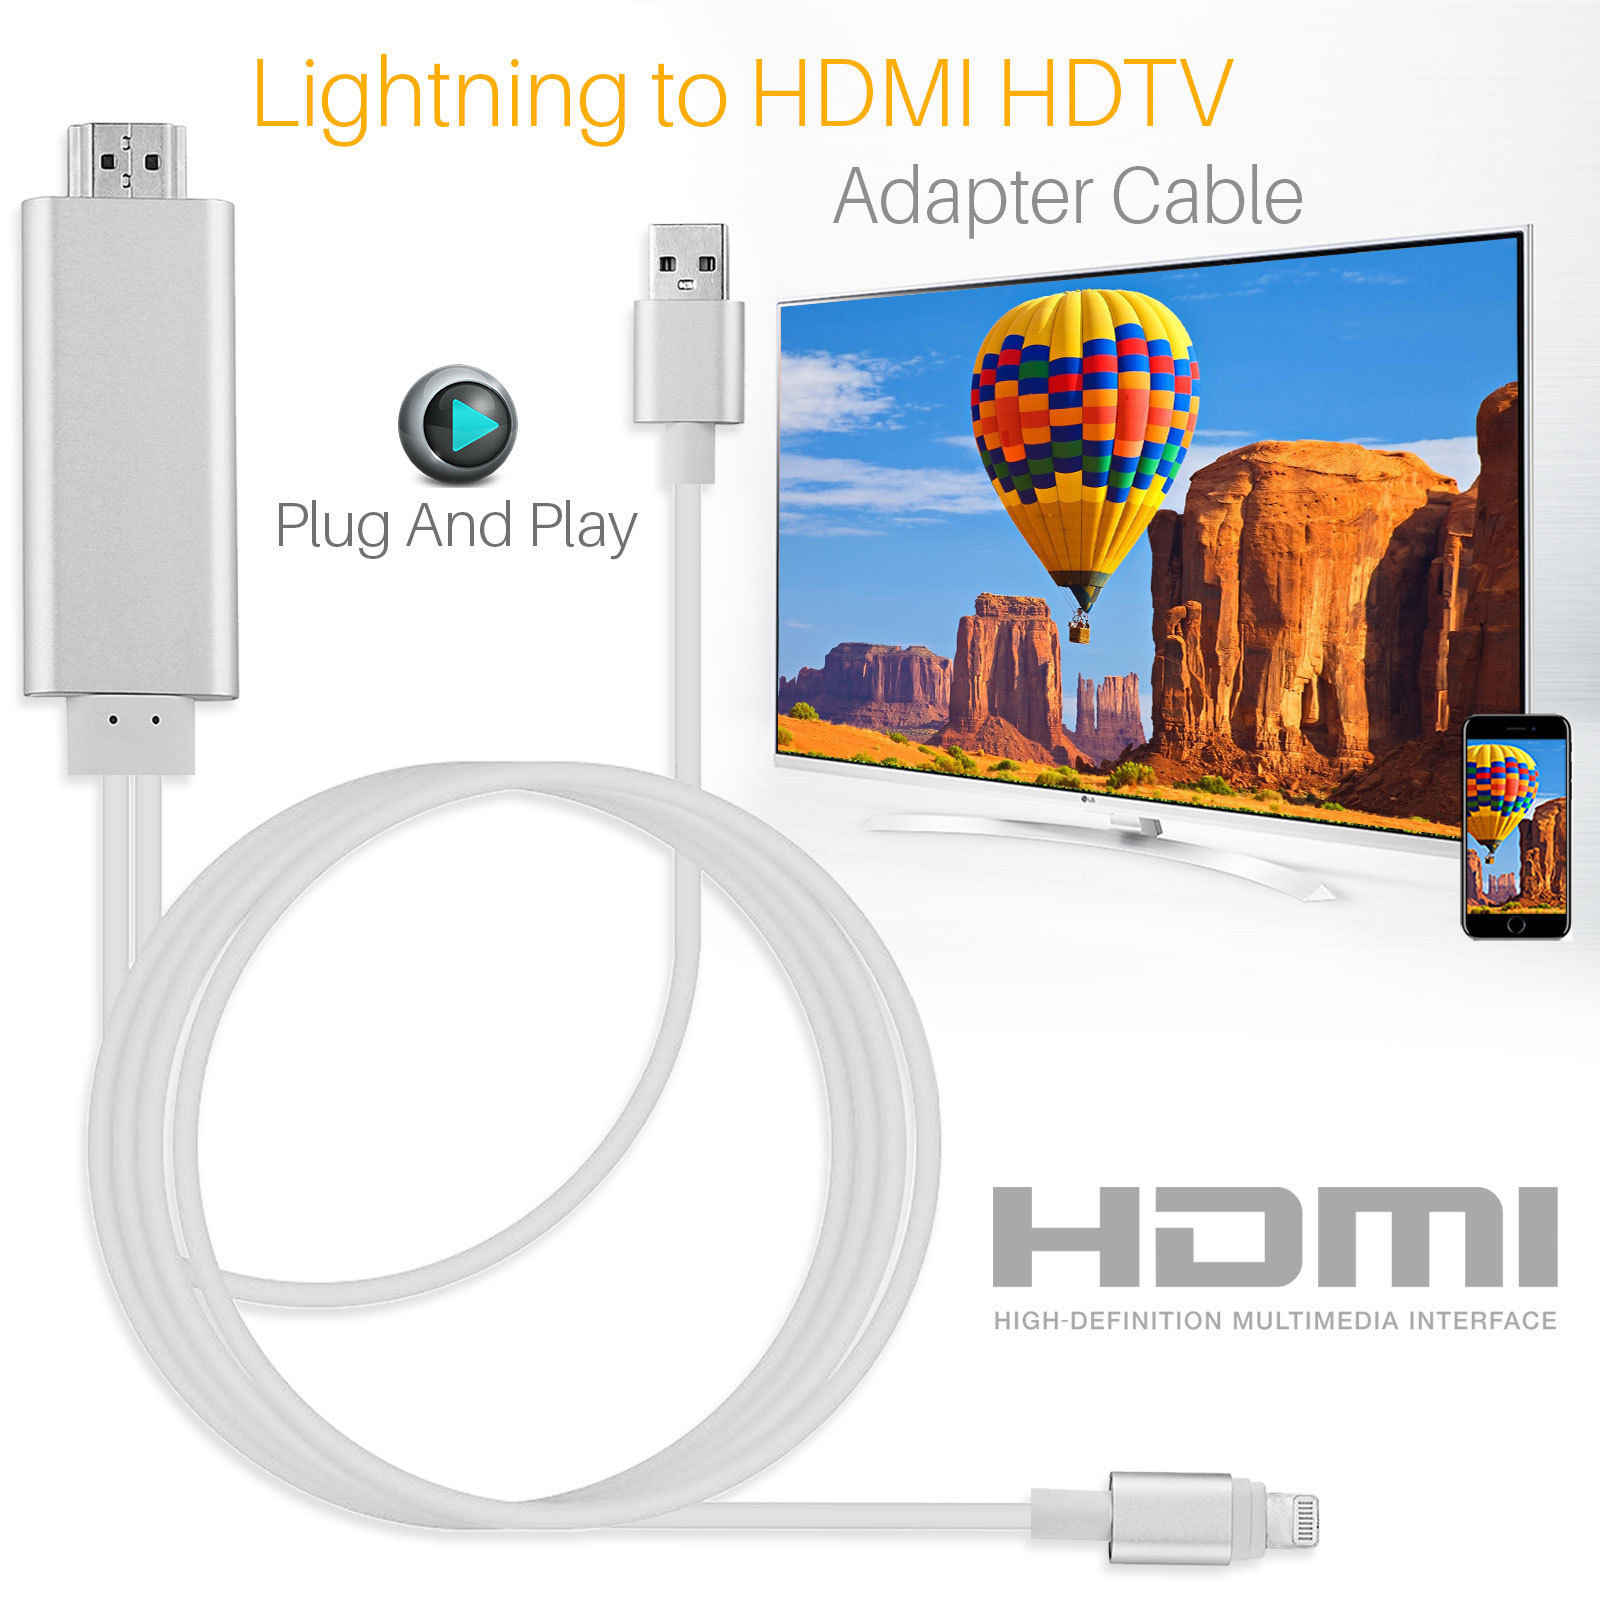 HDMI Cable For Lightning to HDMI Cable HDTV TV AV Adapter USB Cable 1080P For iPad Air /iPad mini 2 3 4 iPhone X 8 7 6S Plus iOS